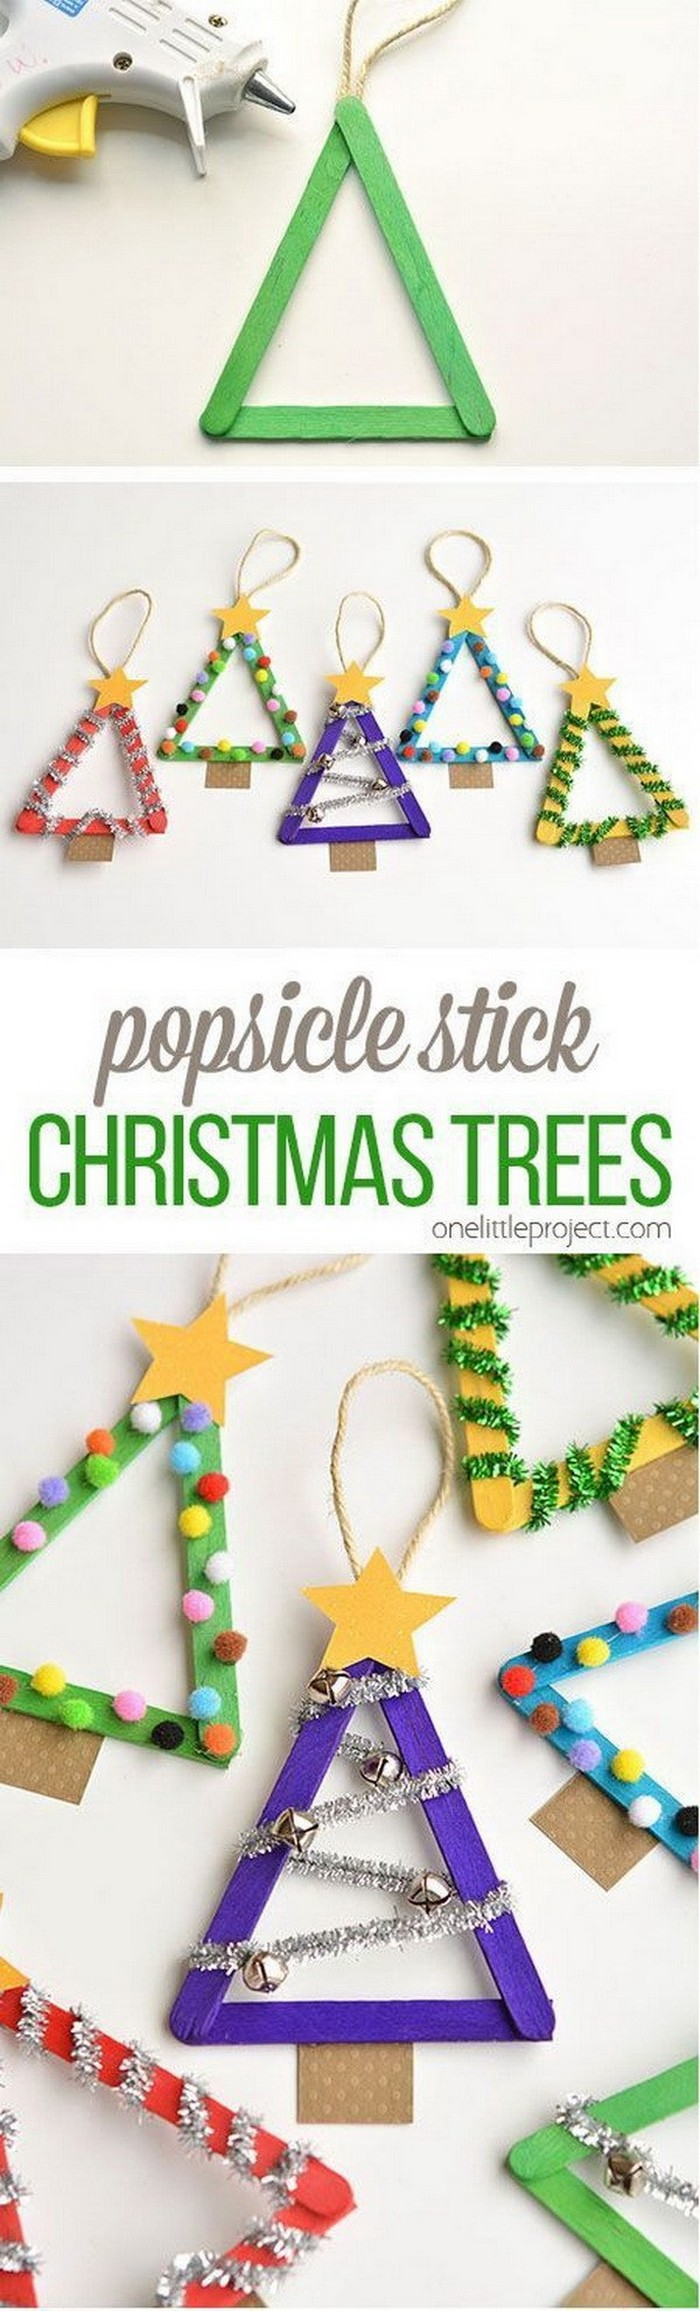 Popsicle Stick Christmas Trees - DIY Christmas crafts